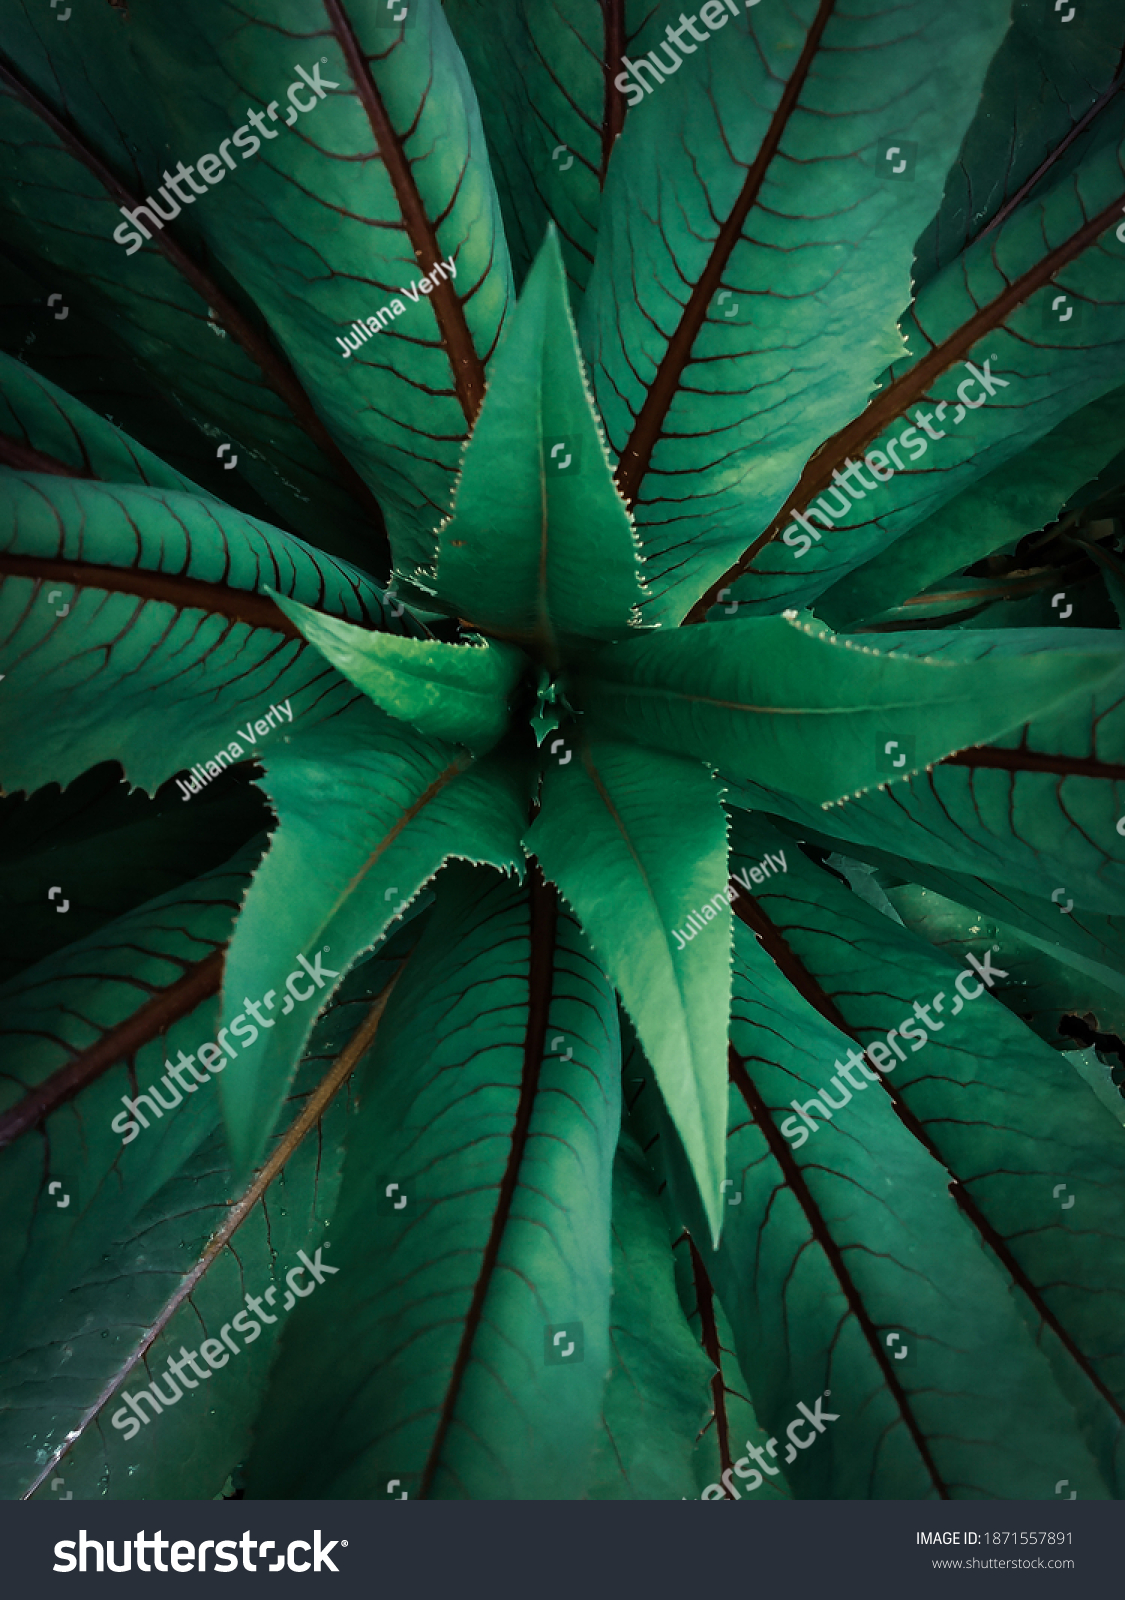 stock-photo-chicory-leaves-representing-